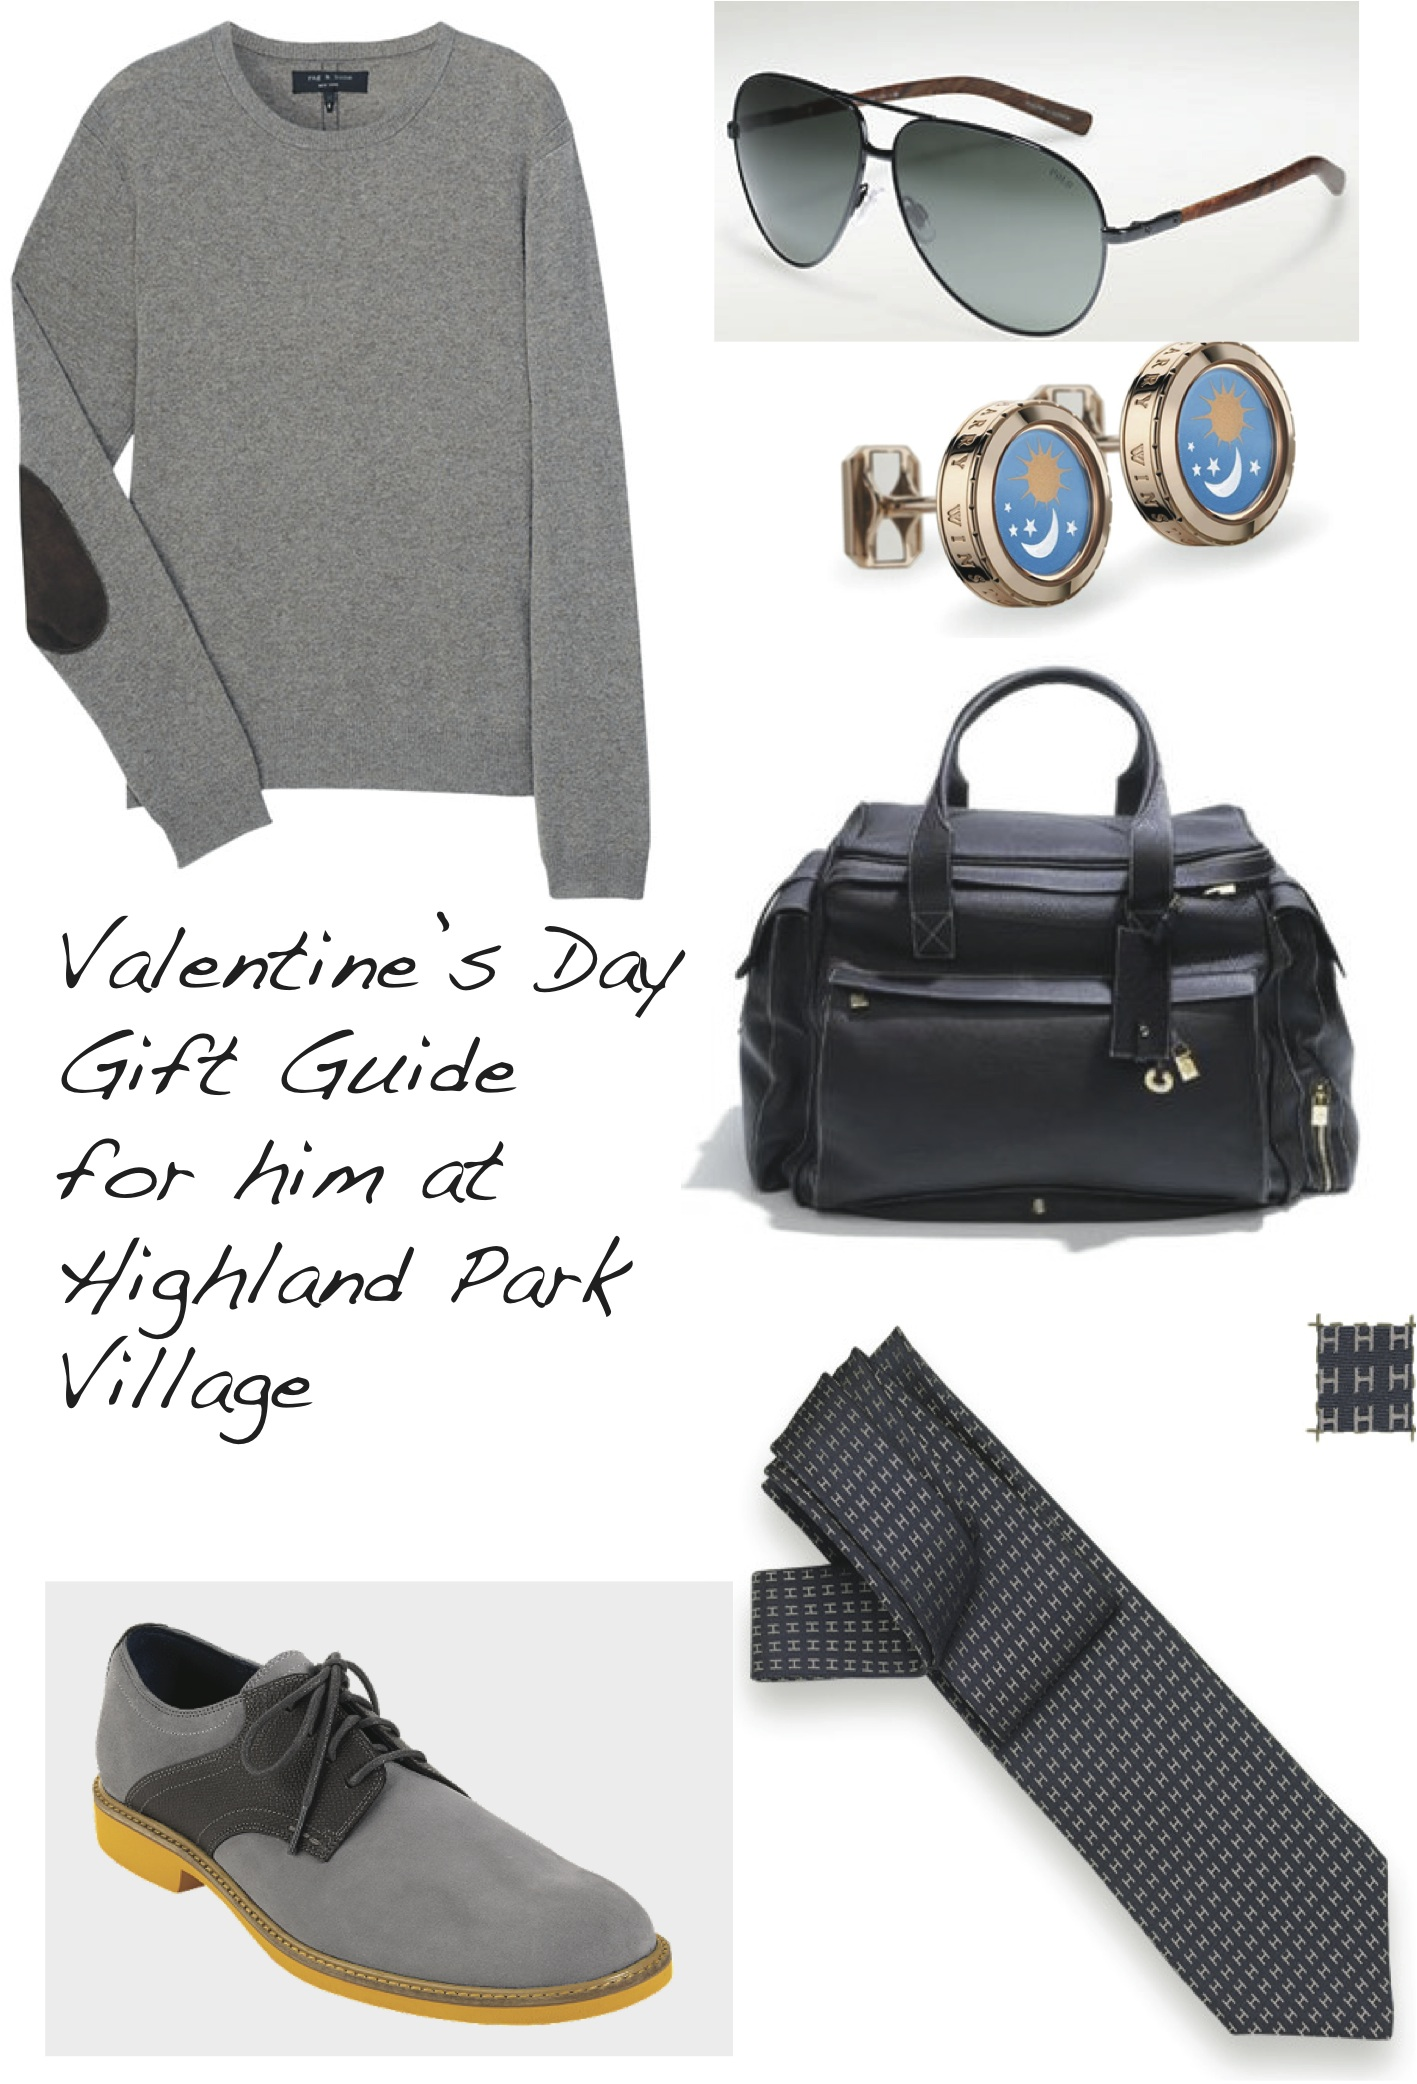 Valentine's Day Gift Guide for Him at Highland Park Village